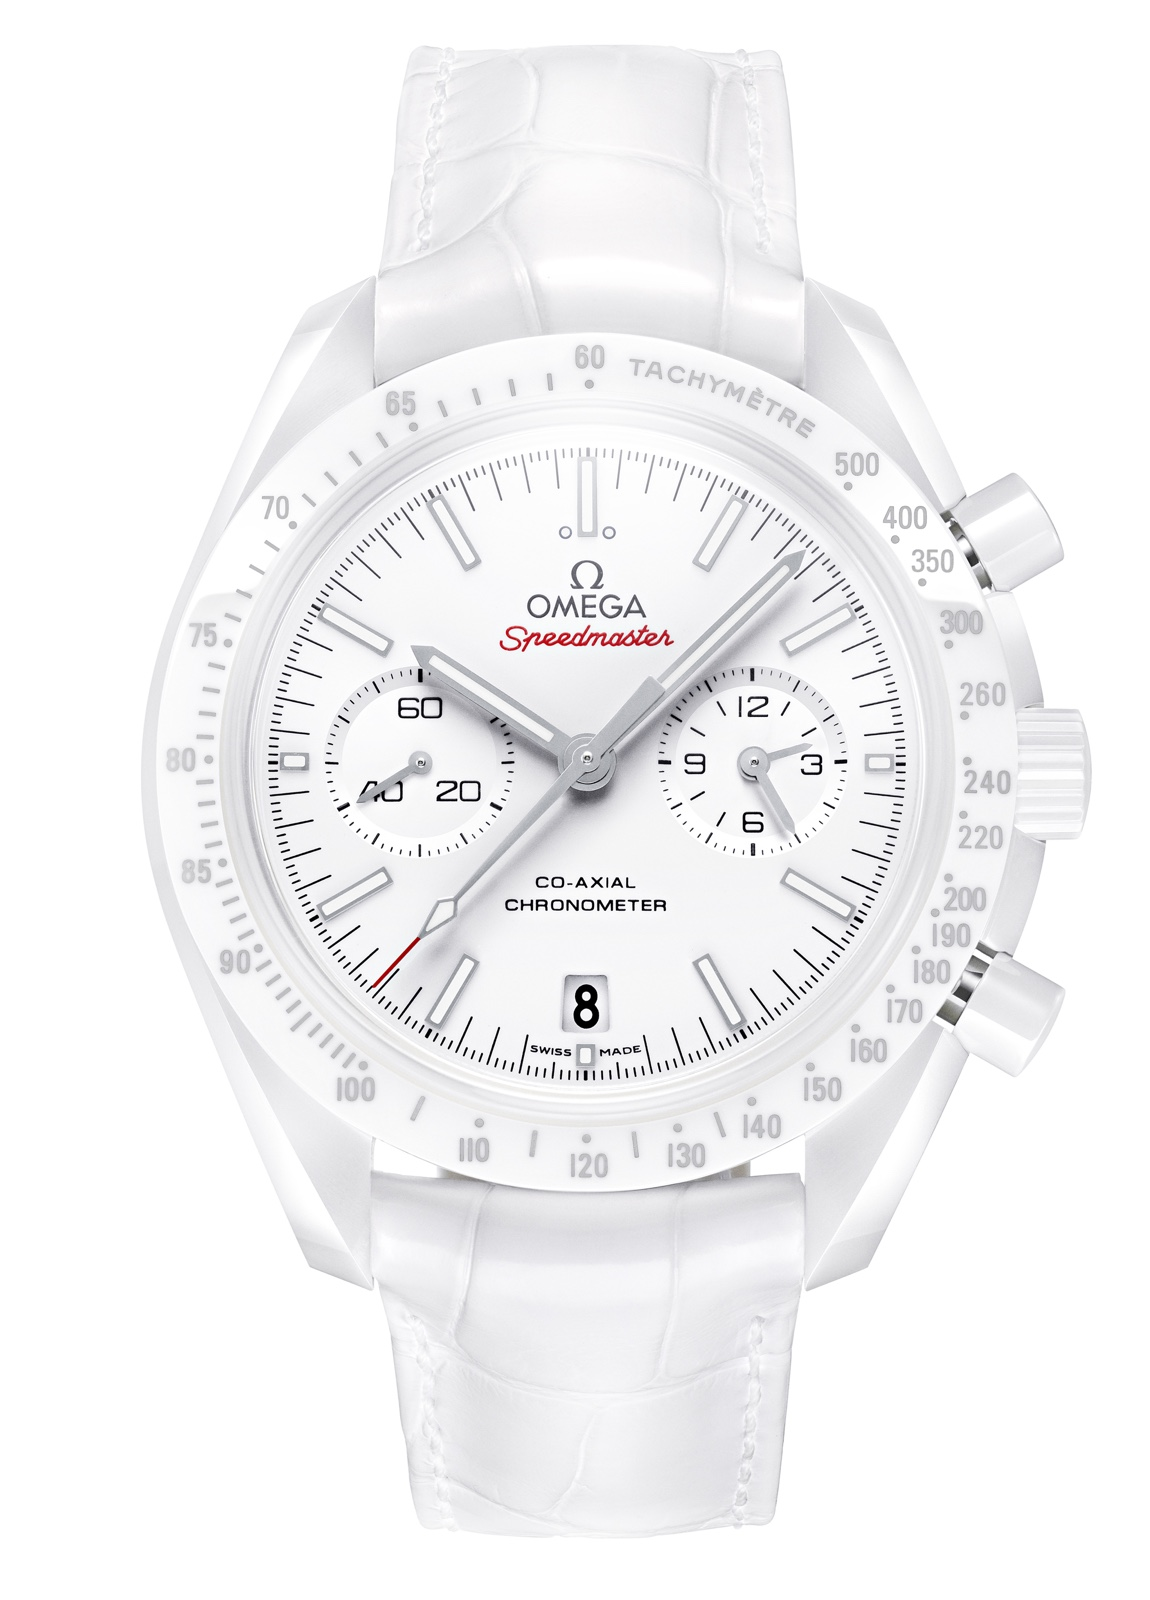 Speedmaster-White-Side-of-the-Moon-Soldat-3